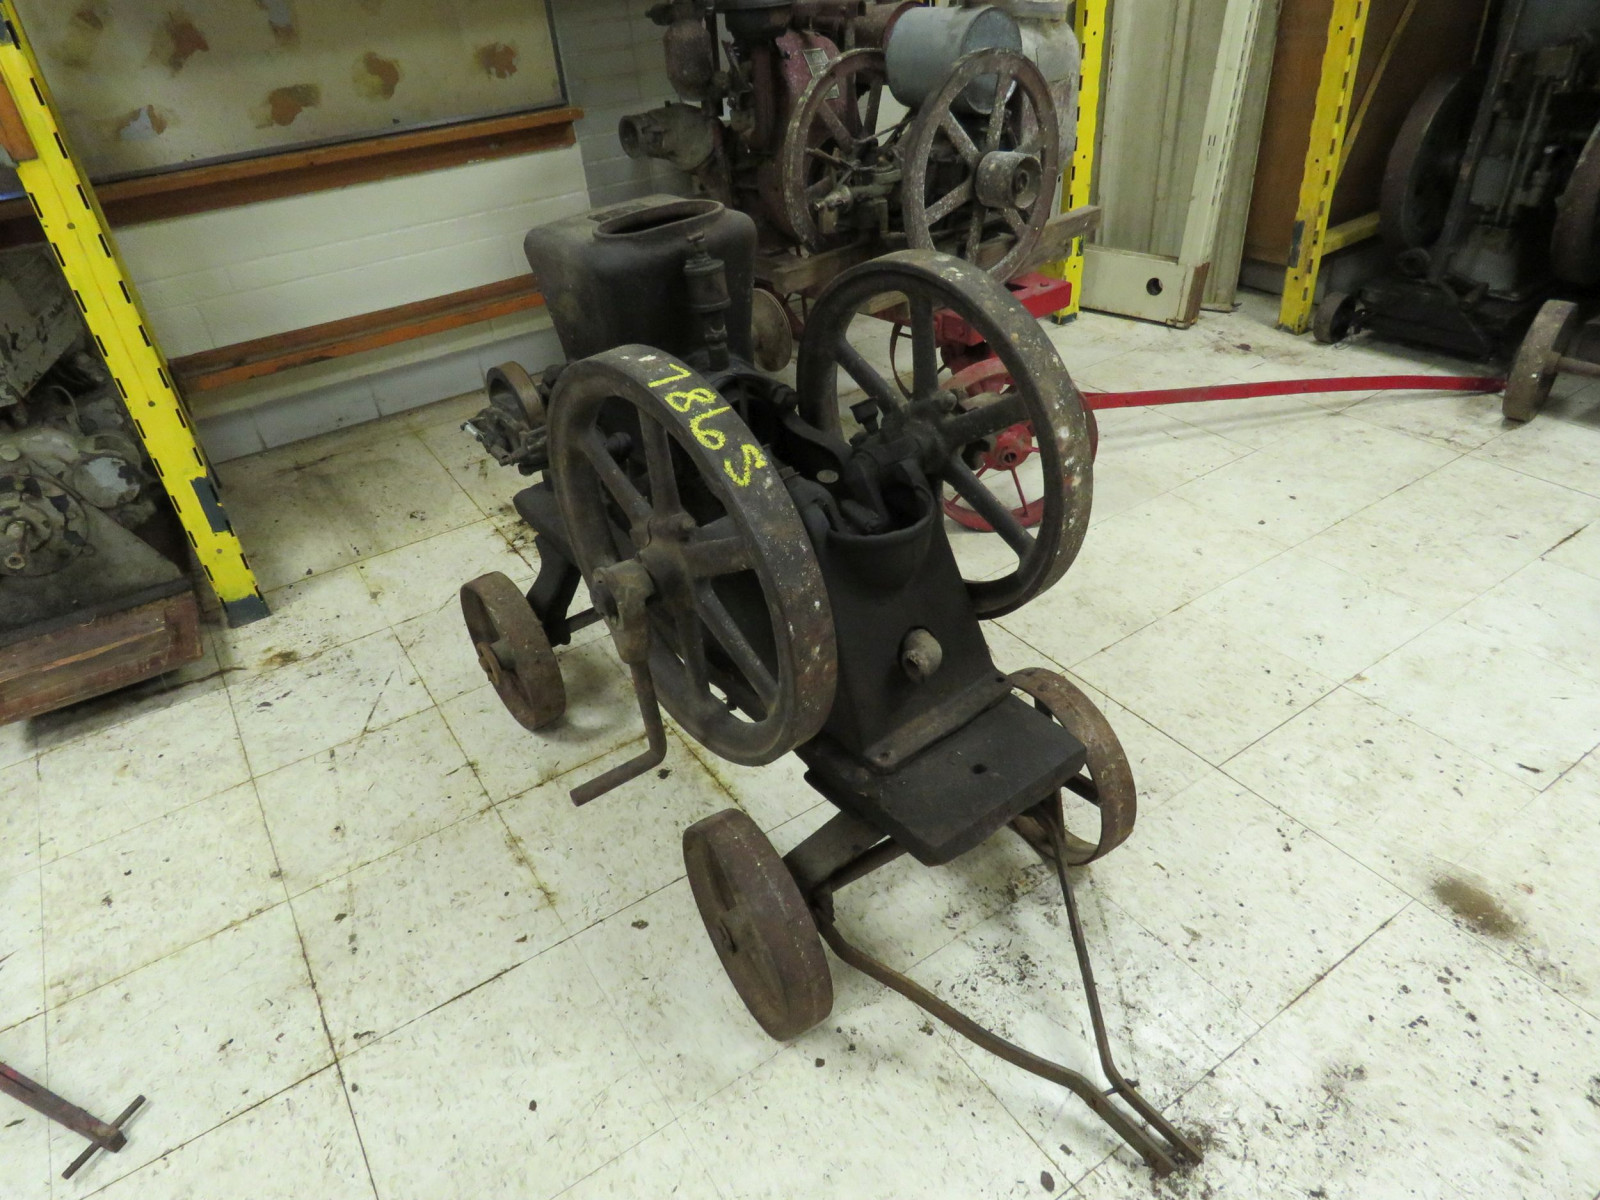 Worthington 1 1/2hp Gasoline Engine On Cart - Image 1